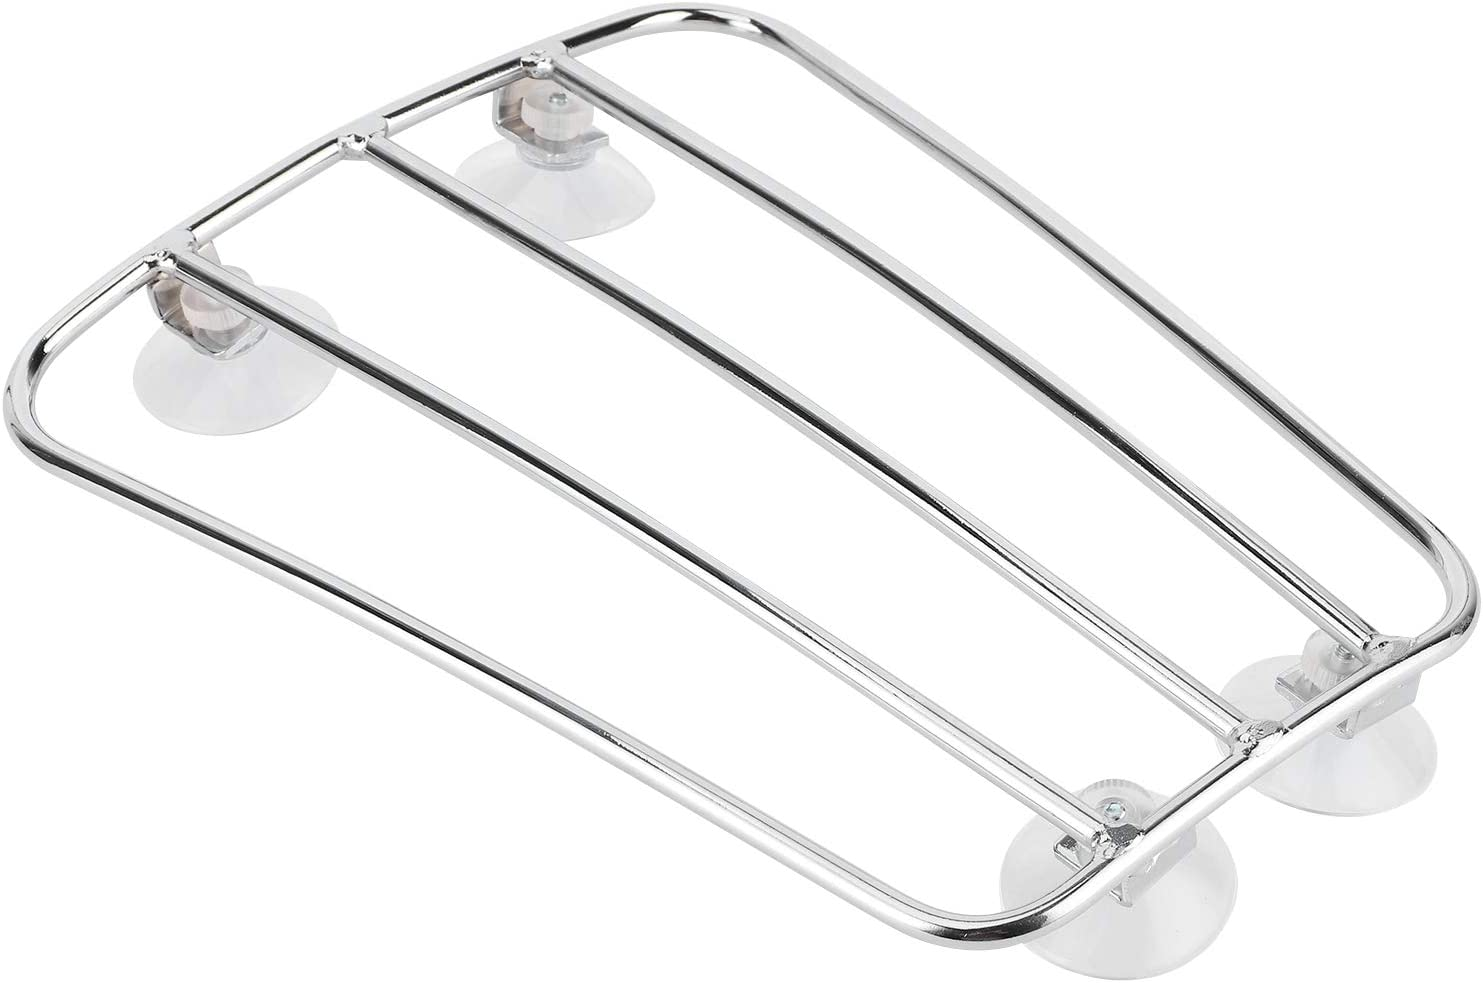 Trust Motorcycle Front Luggage Tank Rack Fuel Cheap bargain